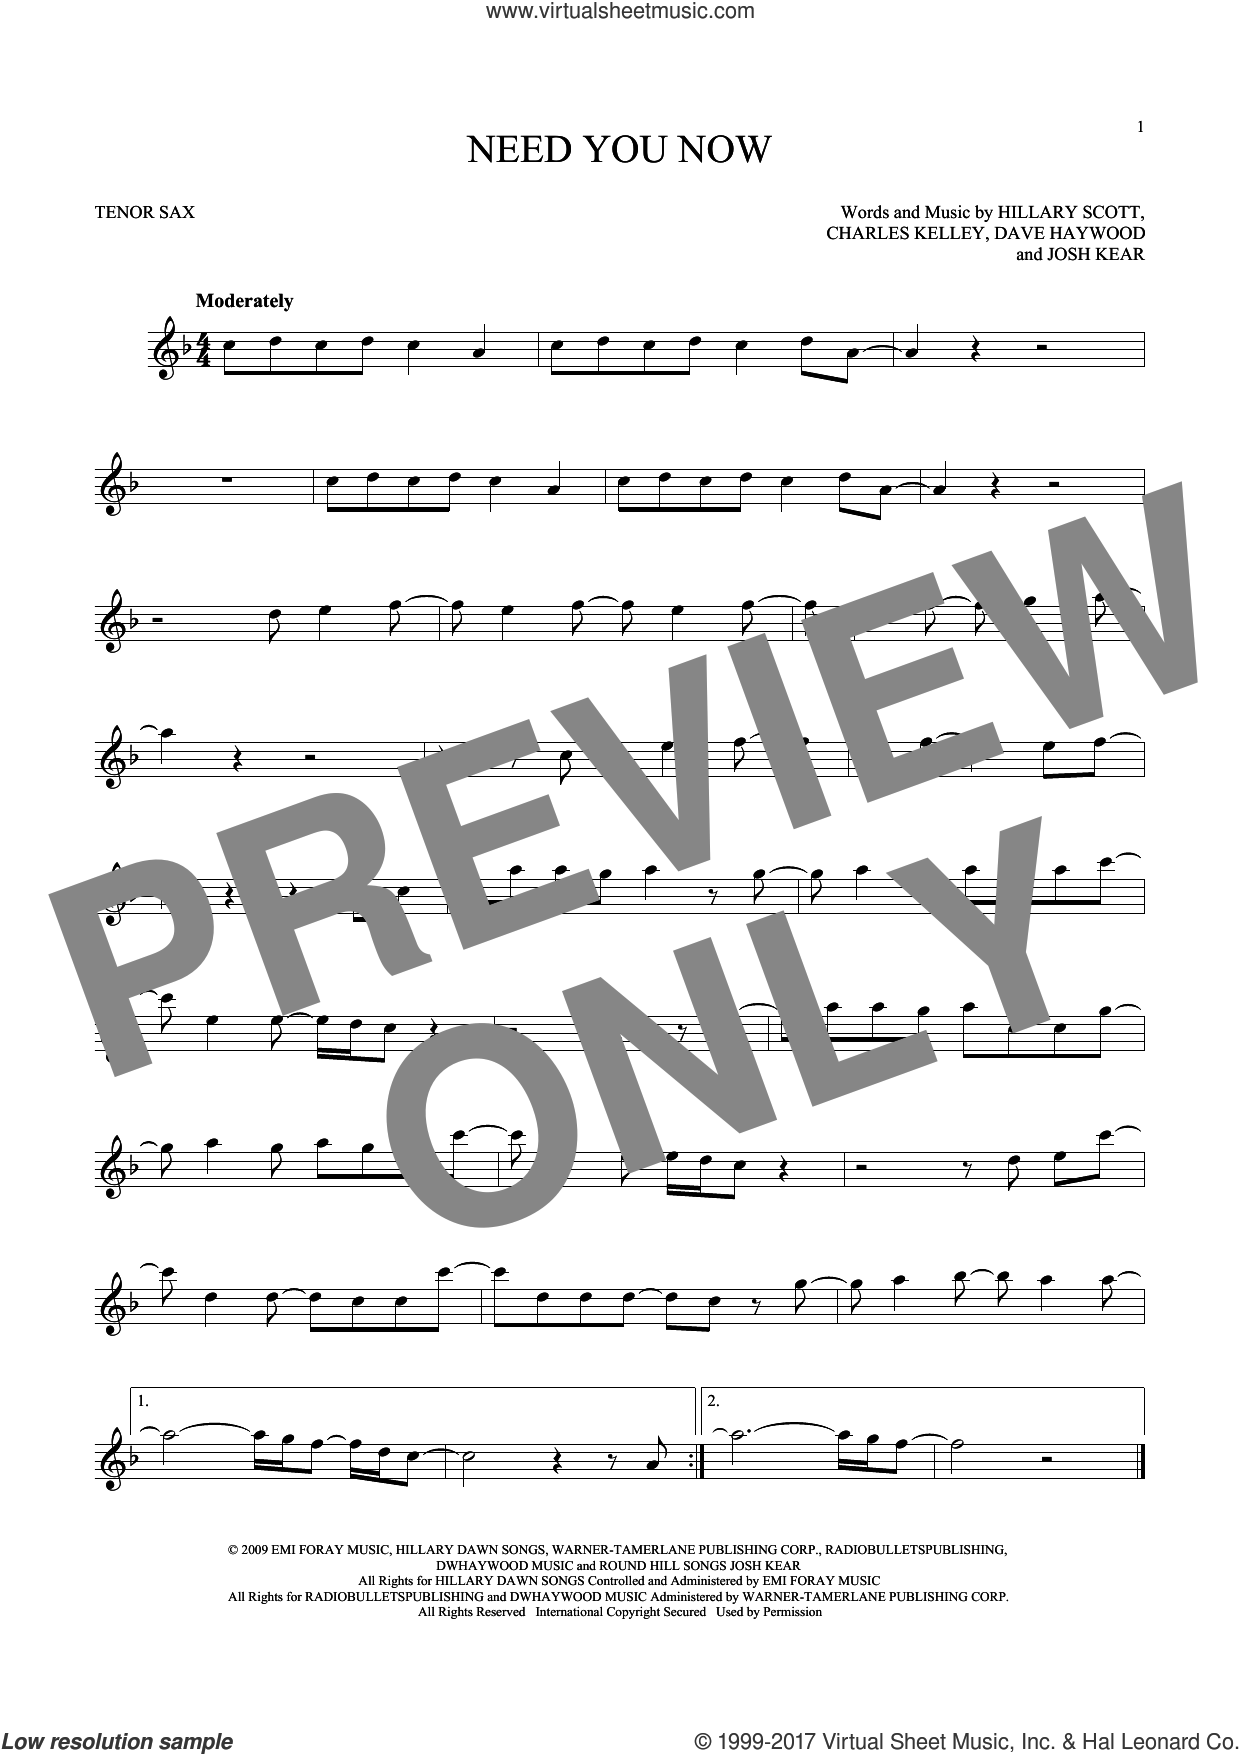 Need You Now sheet music for tenor saxophone solo by Lady Antebellum, Charles Kelley, Dave Haywood, Hillary Scott and Josh Kear, intermediate skill level